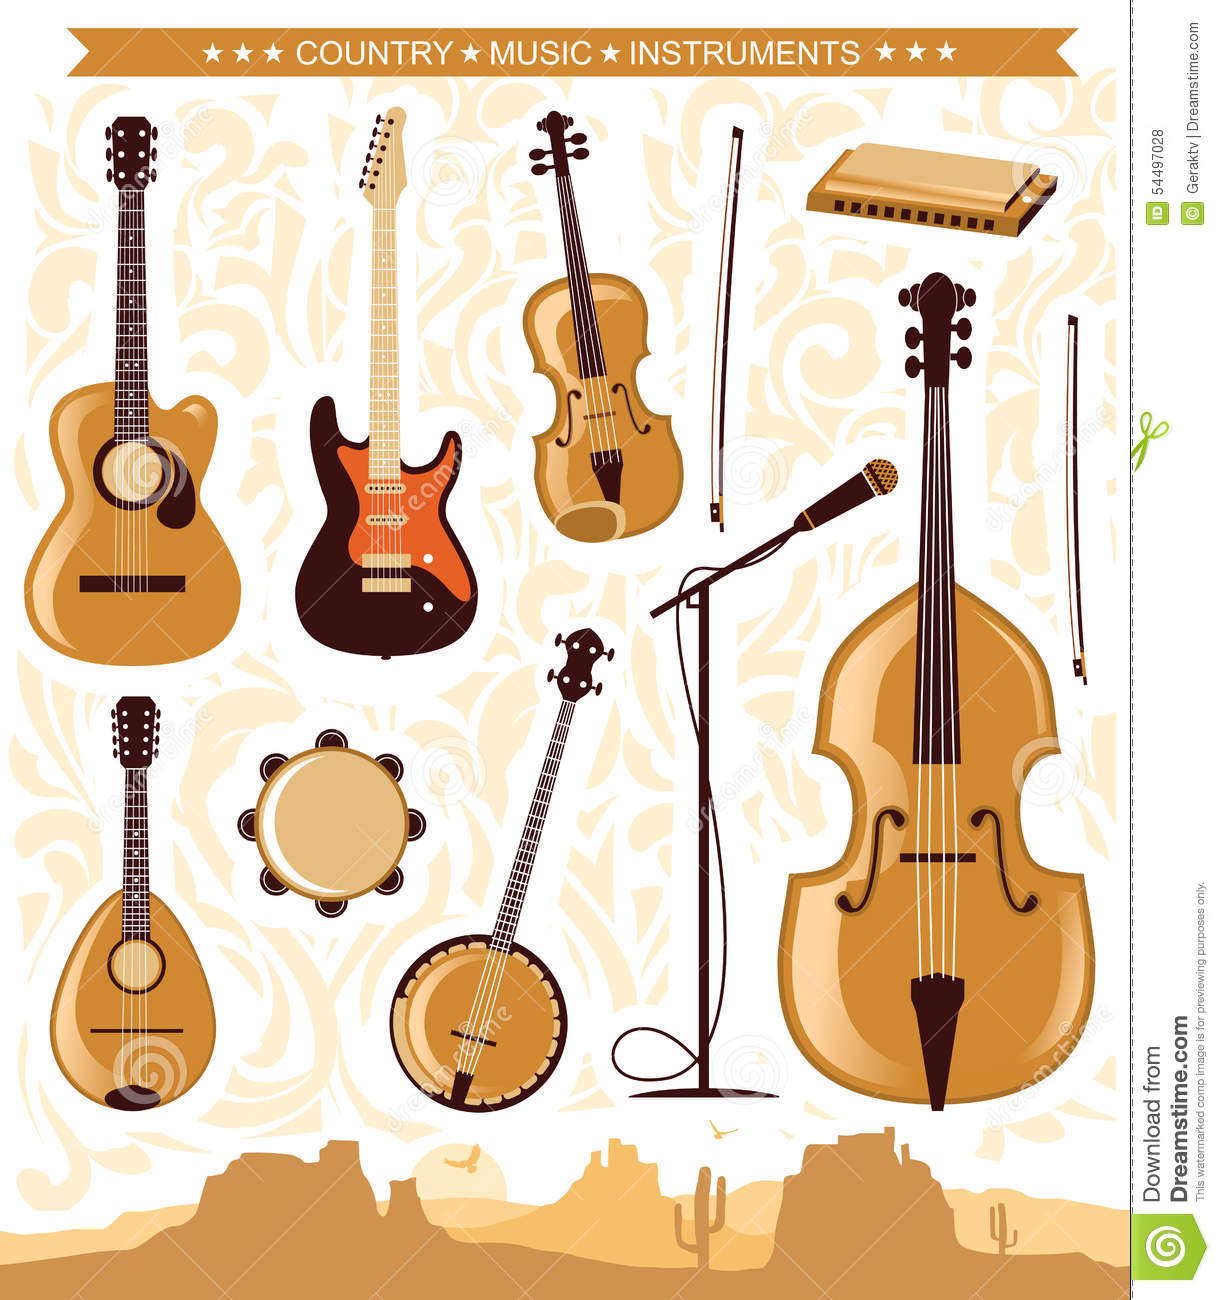 vector country music instruments for design stock vector image 54497028. Black Bedroom Furniture Sets. Home Design Ideas